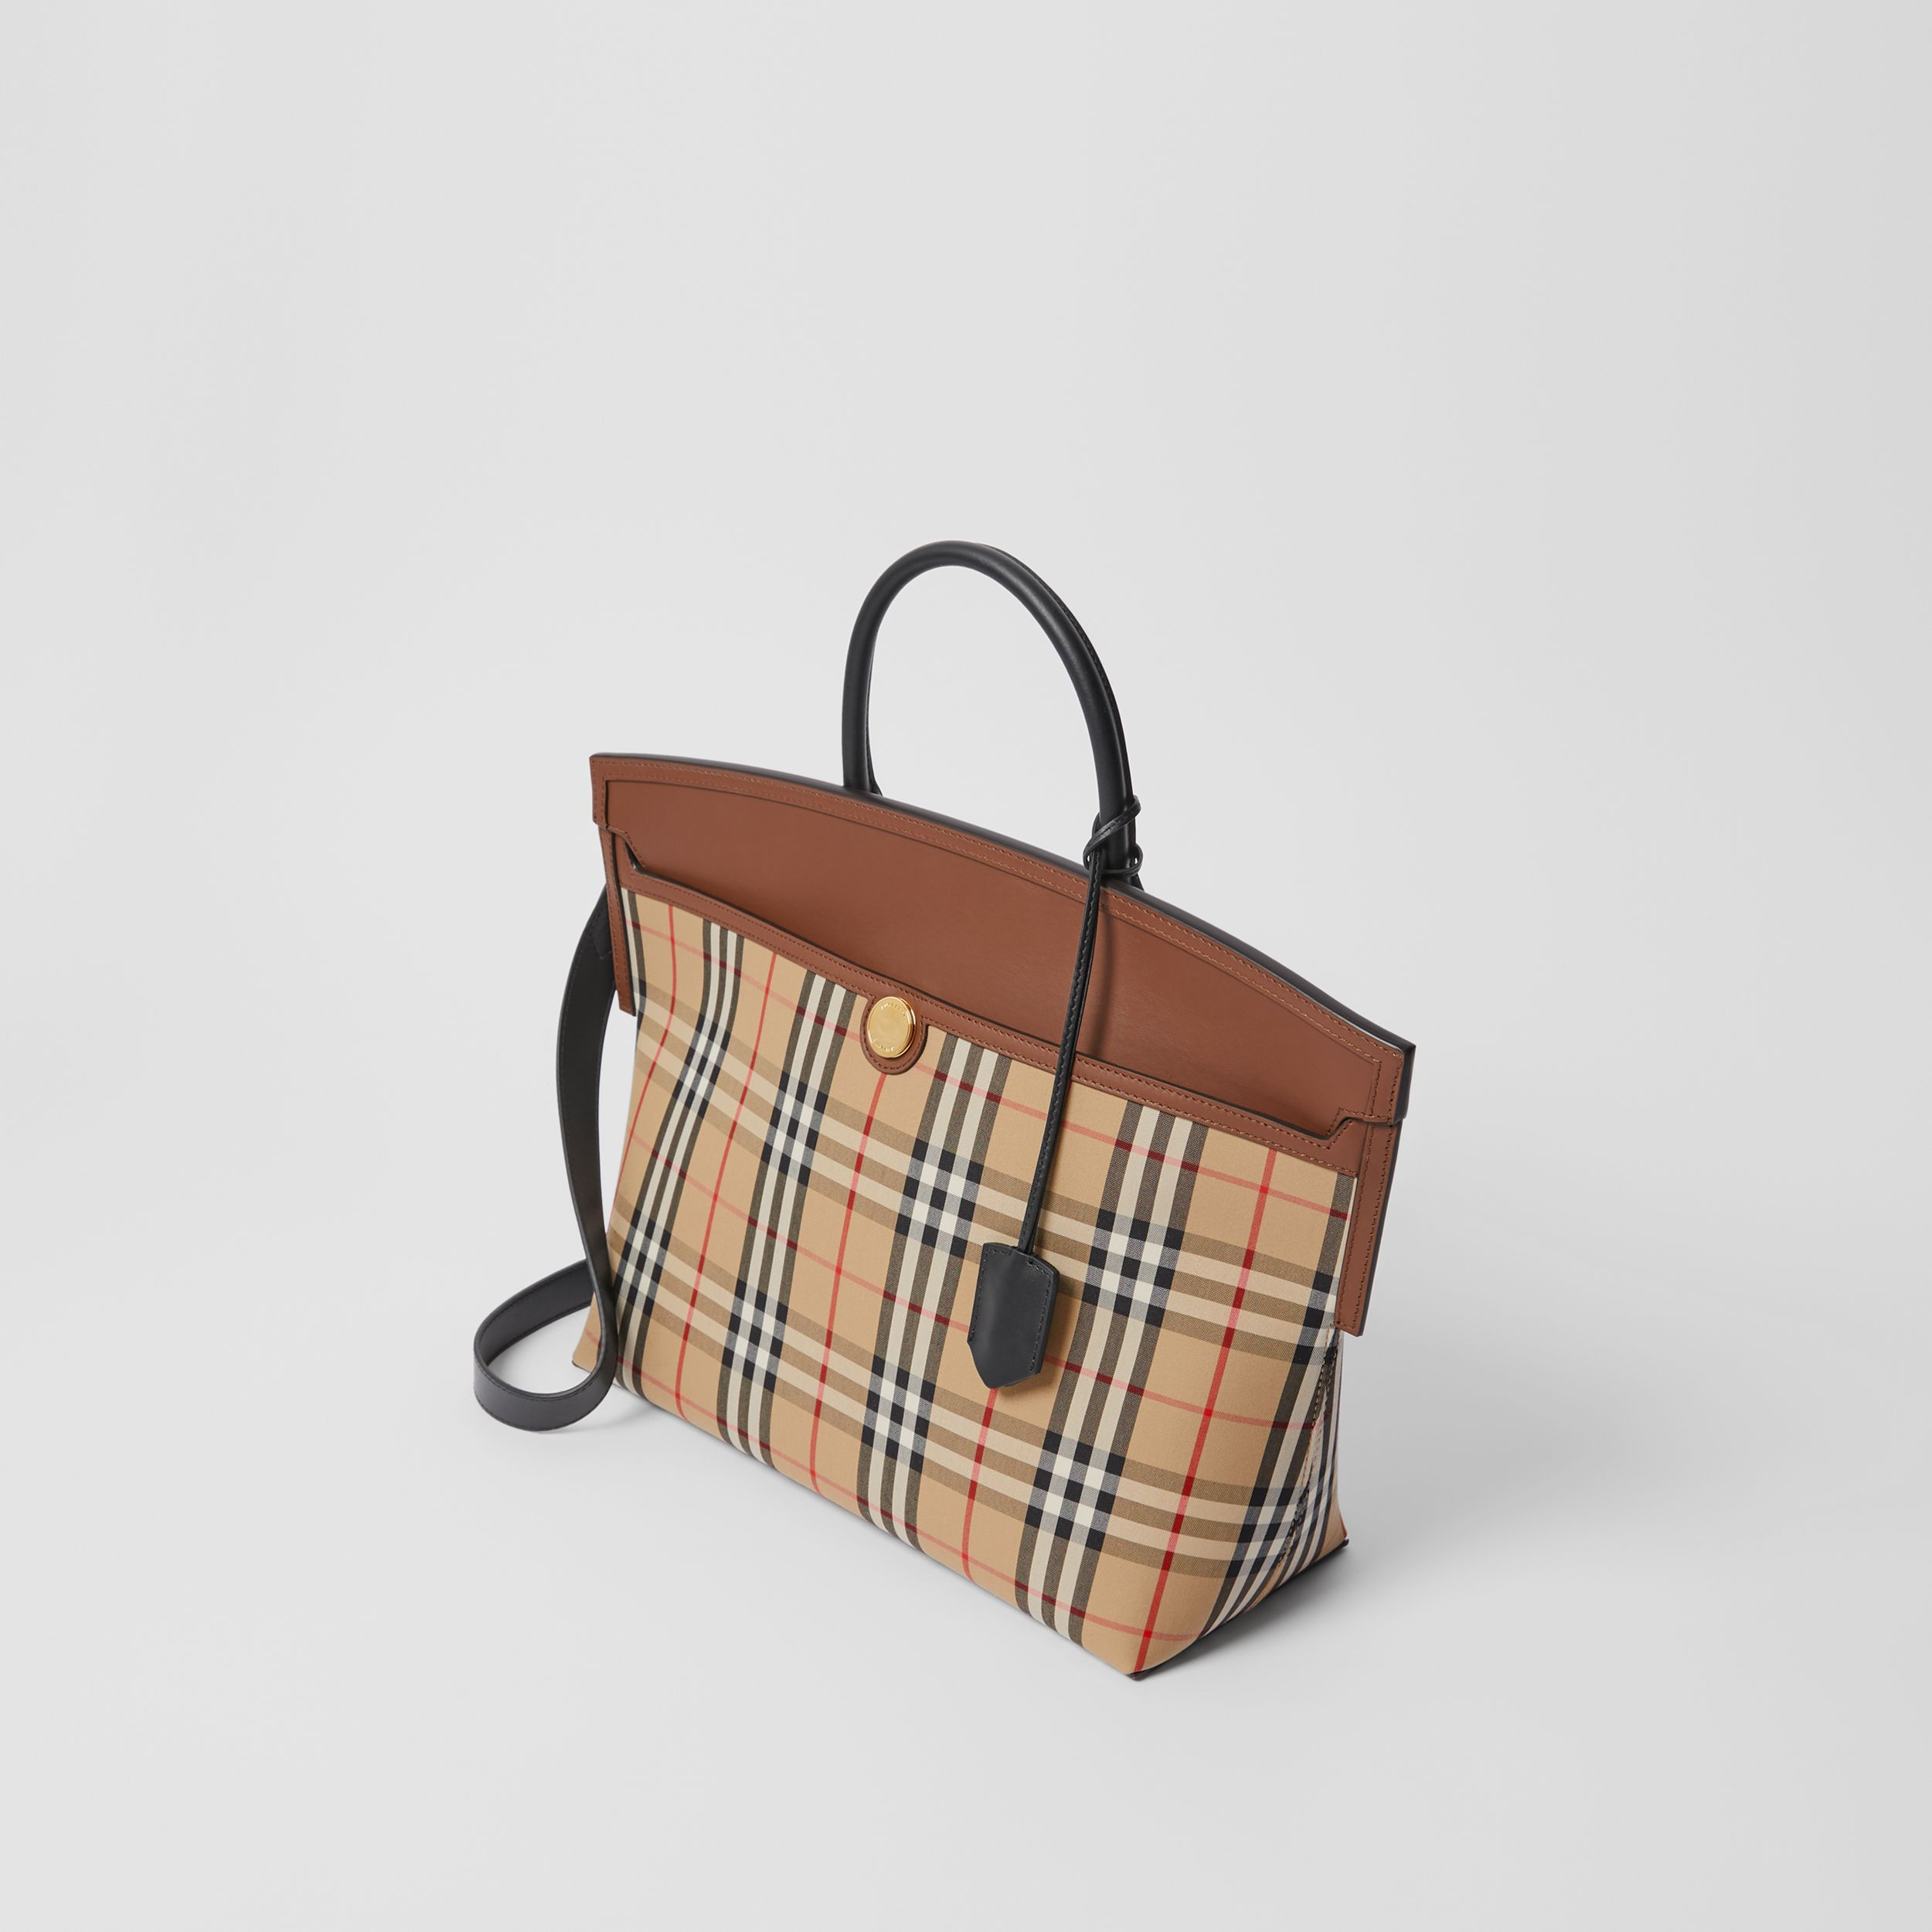 Borsa Society con motivo Vintage check e finiture in pelle (Beige Archivio/marroncino) - Donna | Burberry - 4